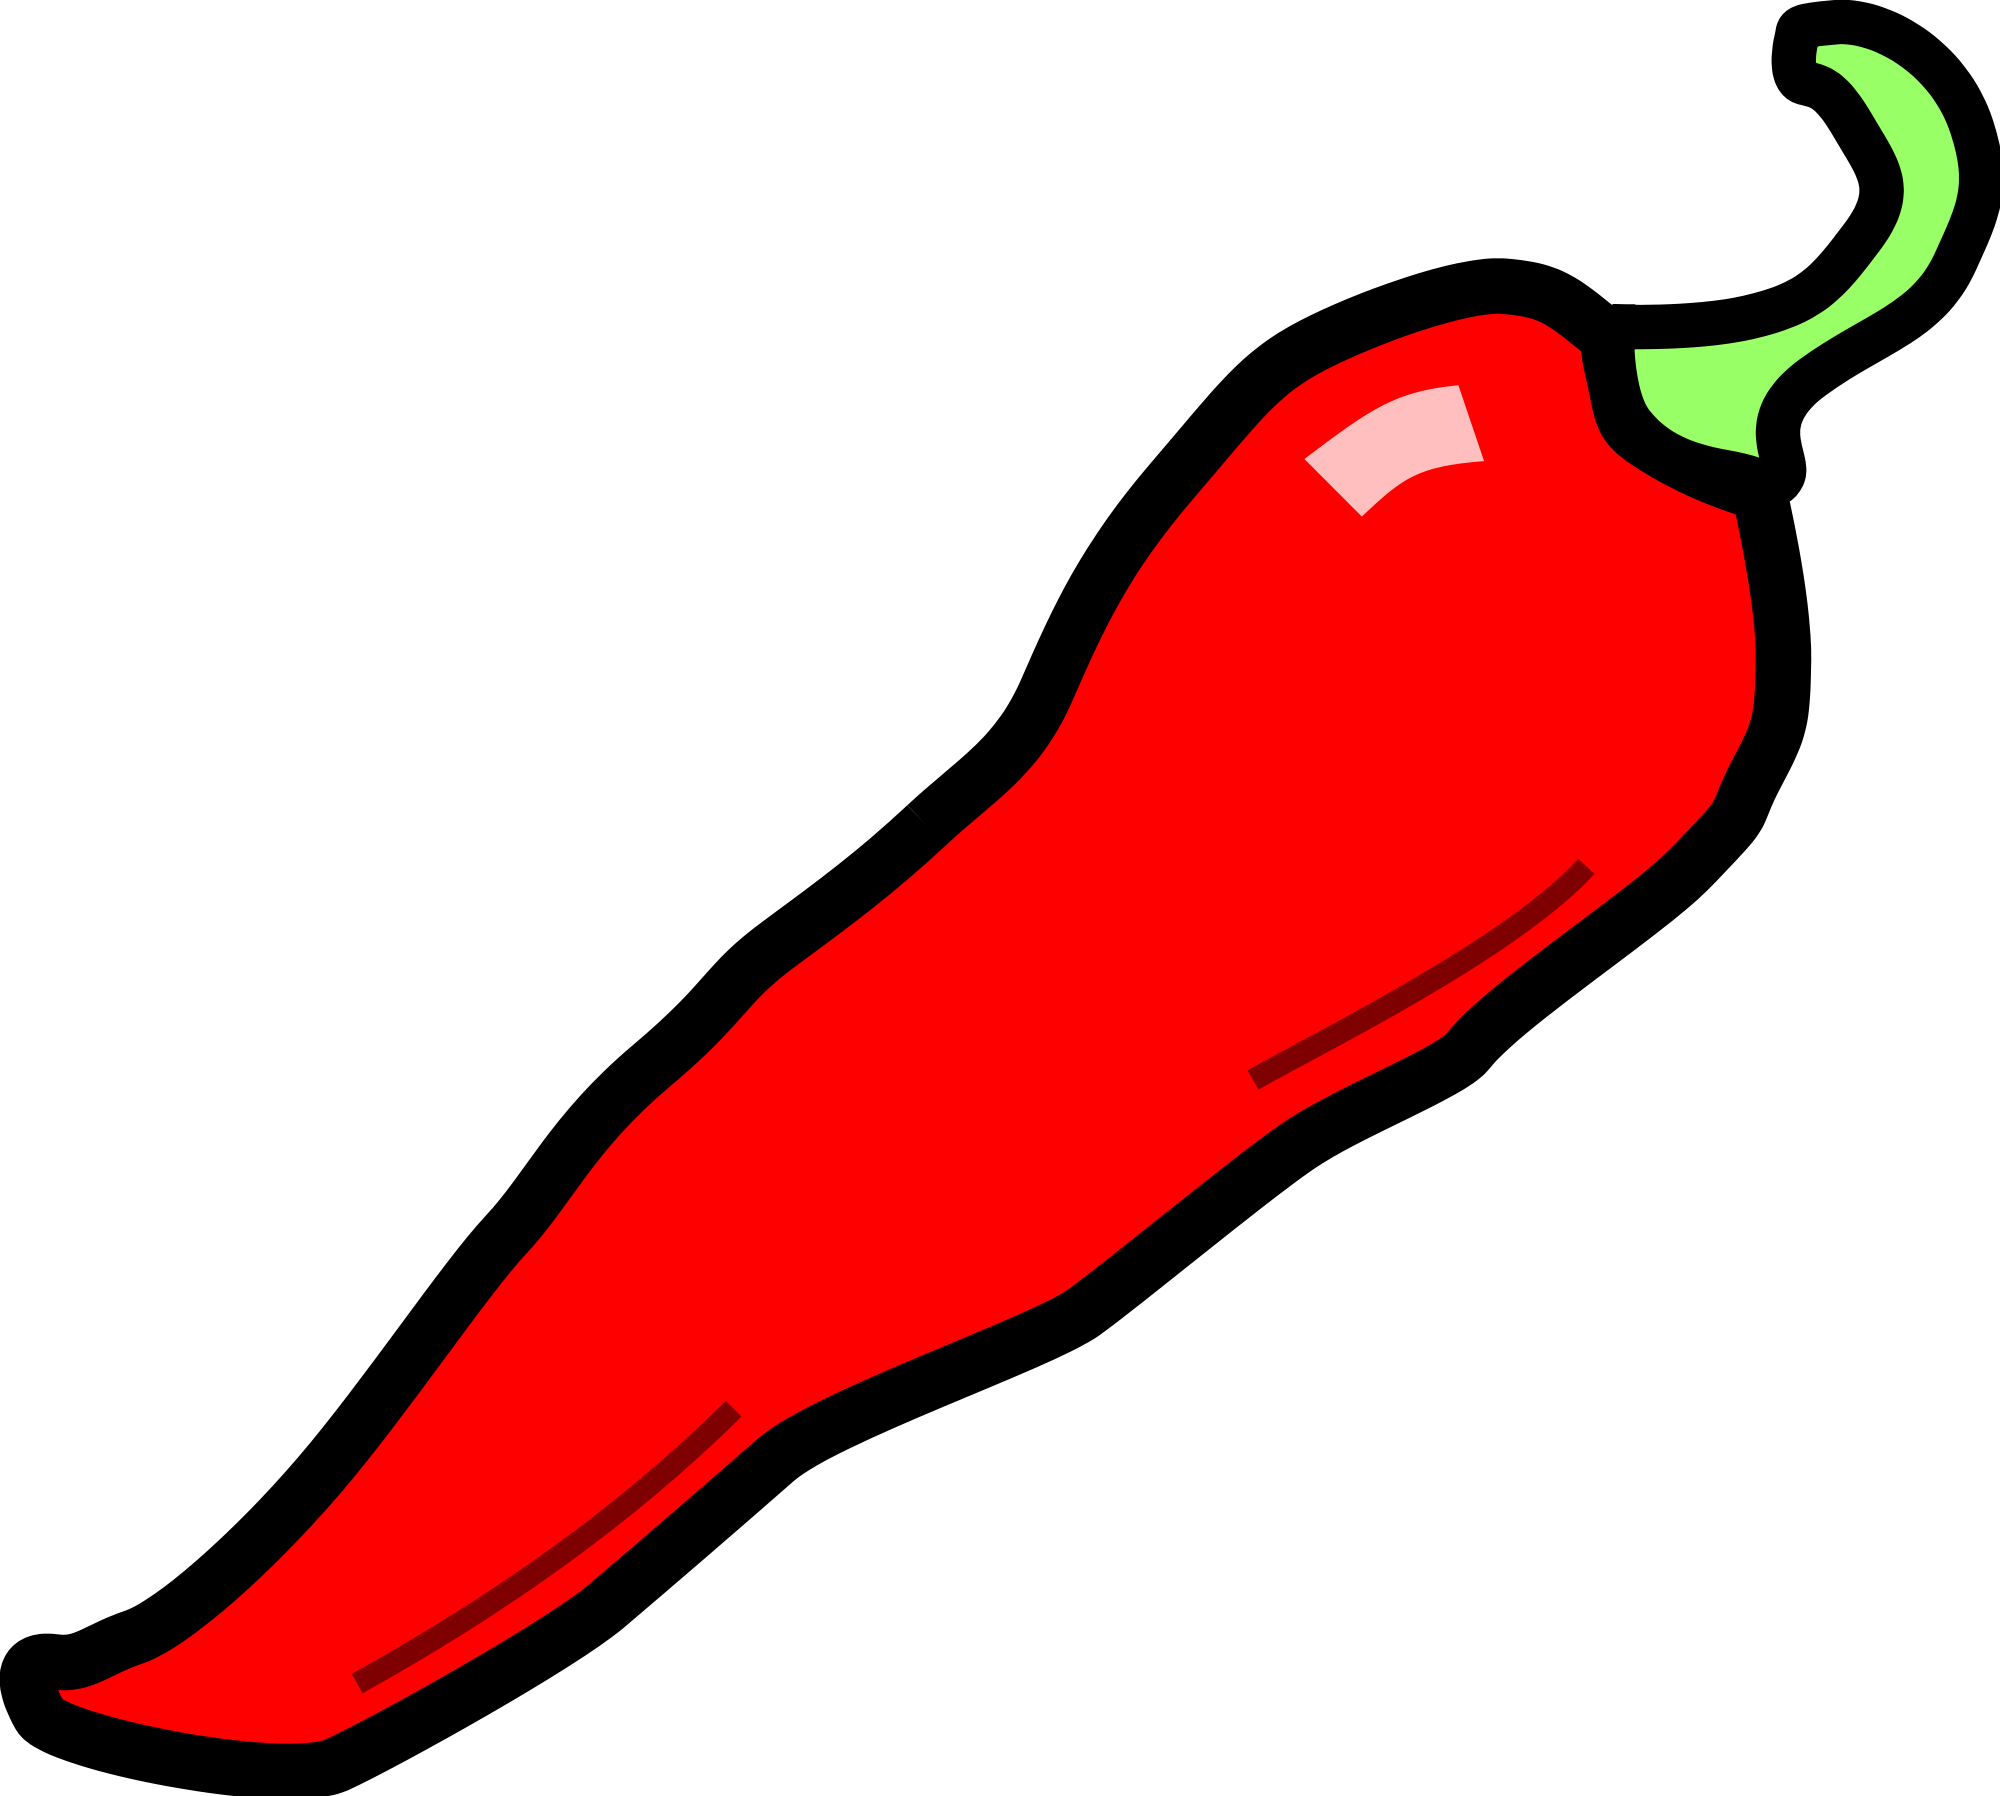 Red Jalapeno Clipart.